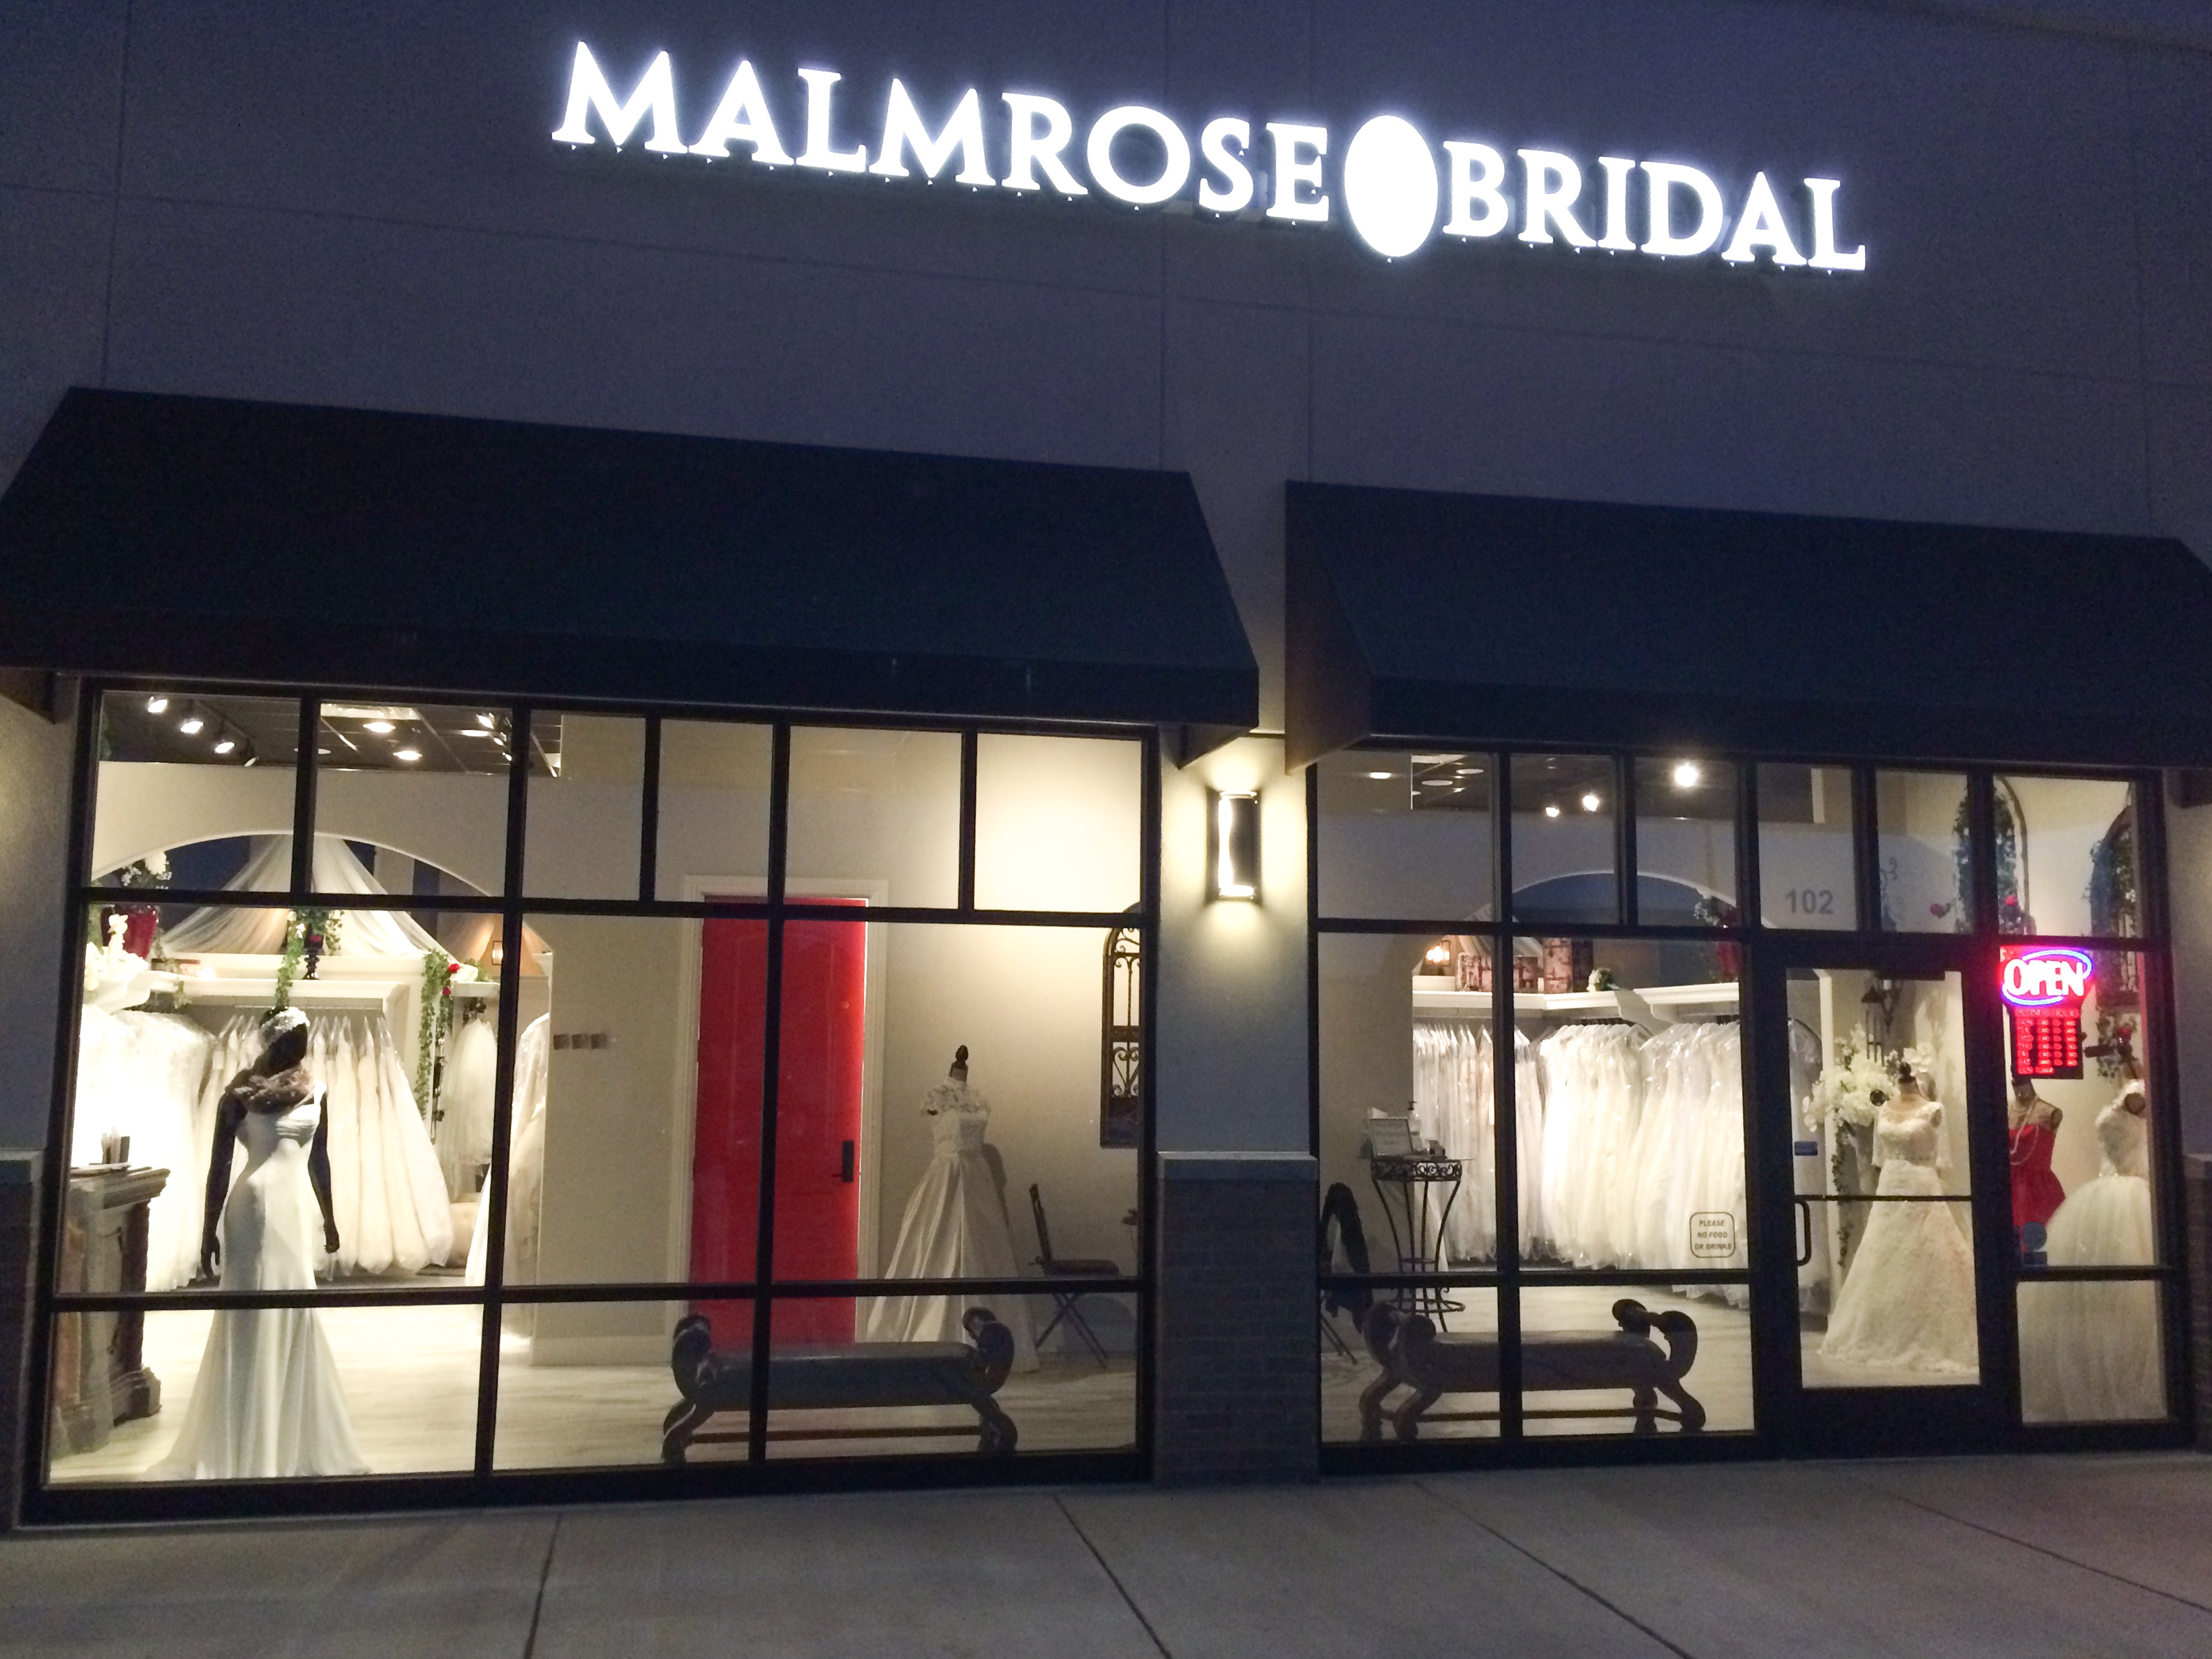 Malmrose Bridal: Sweetheart Gowns Authorize Retailer